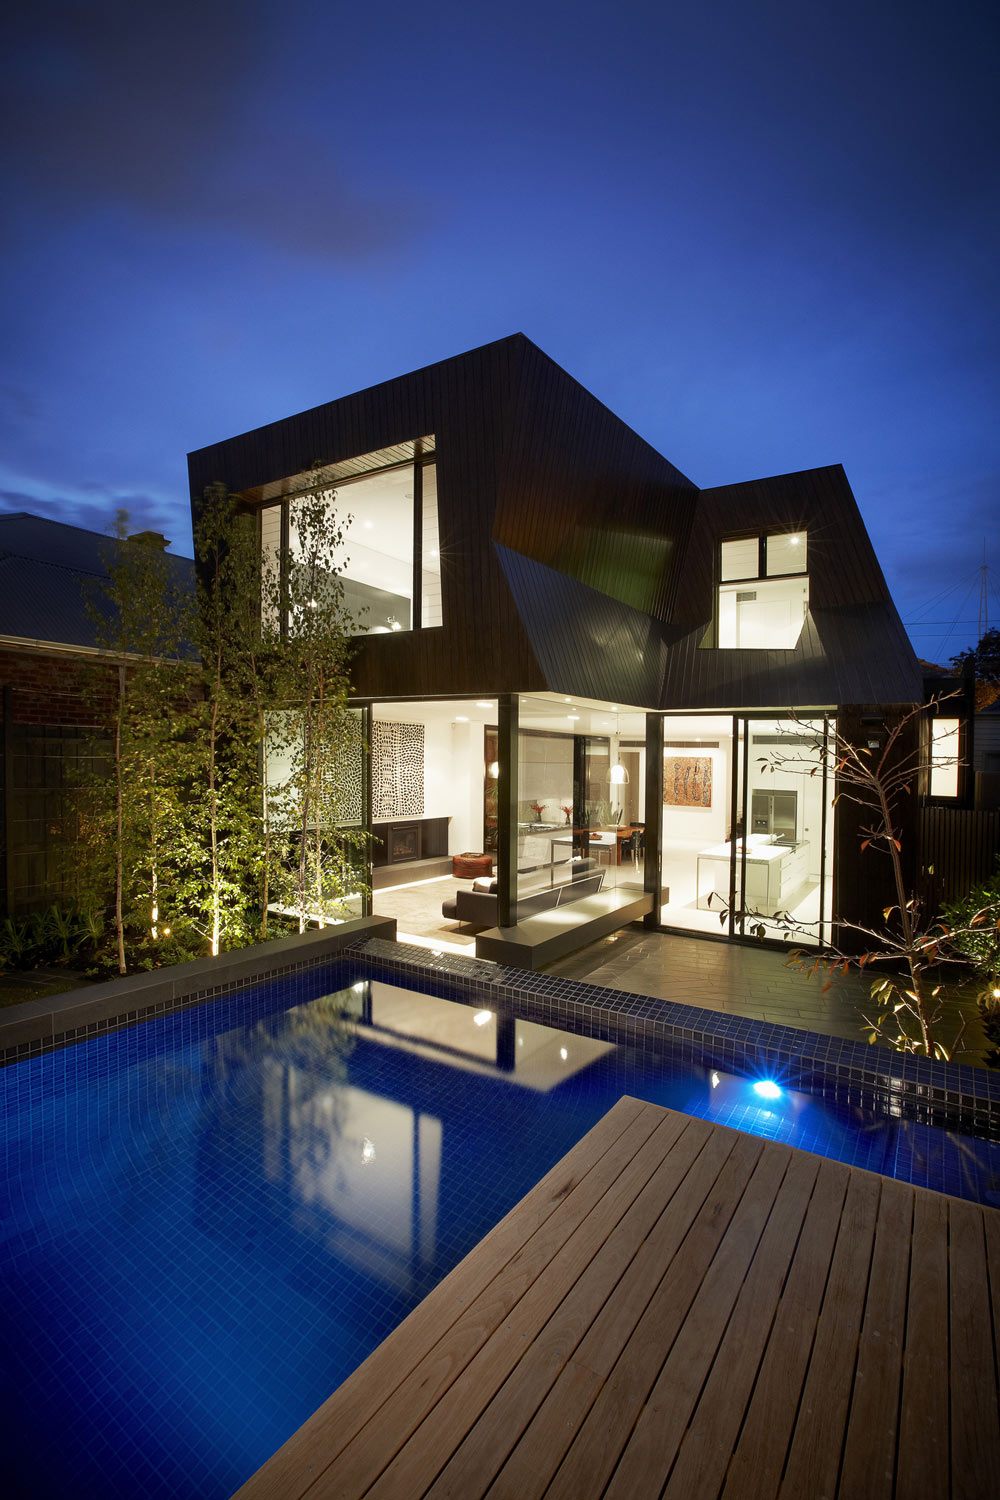 Enclave house in melbourne australia by bkk architects for Pool design ideas australia